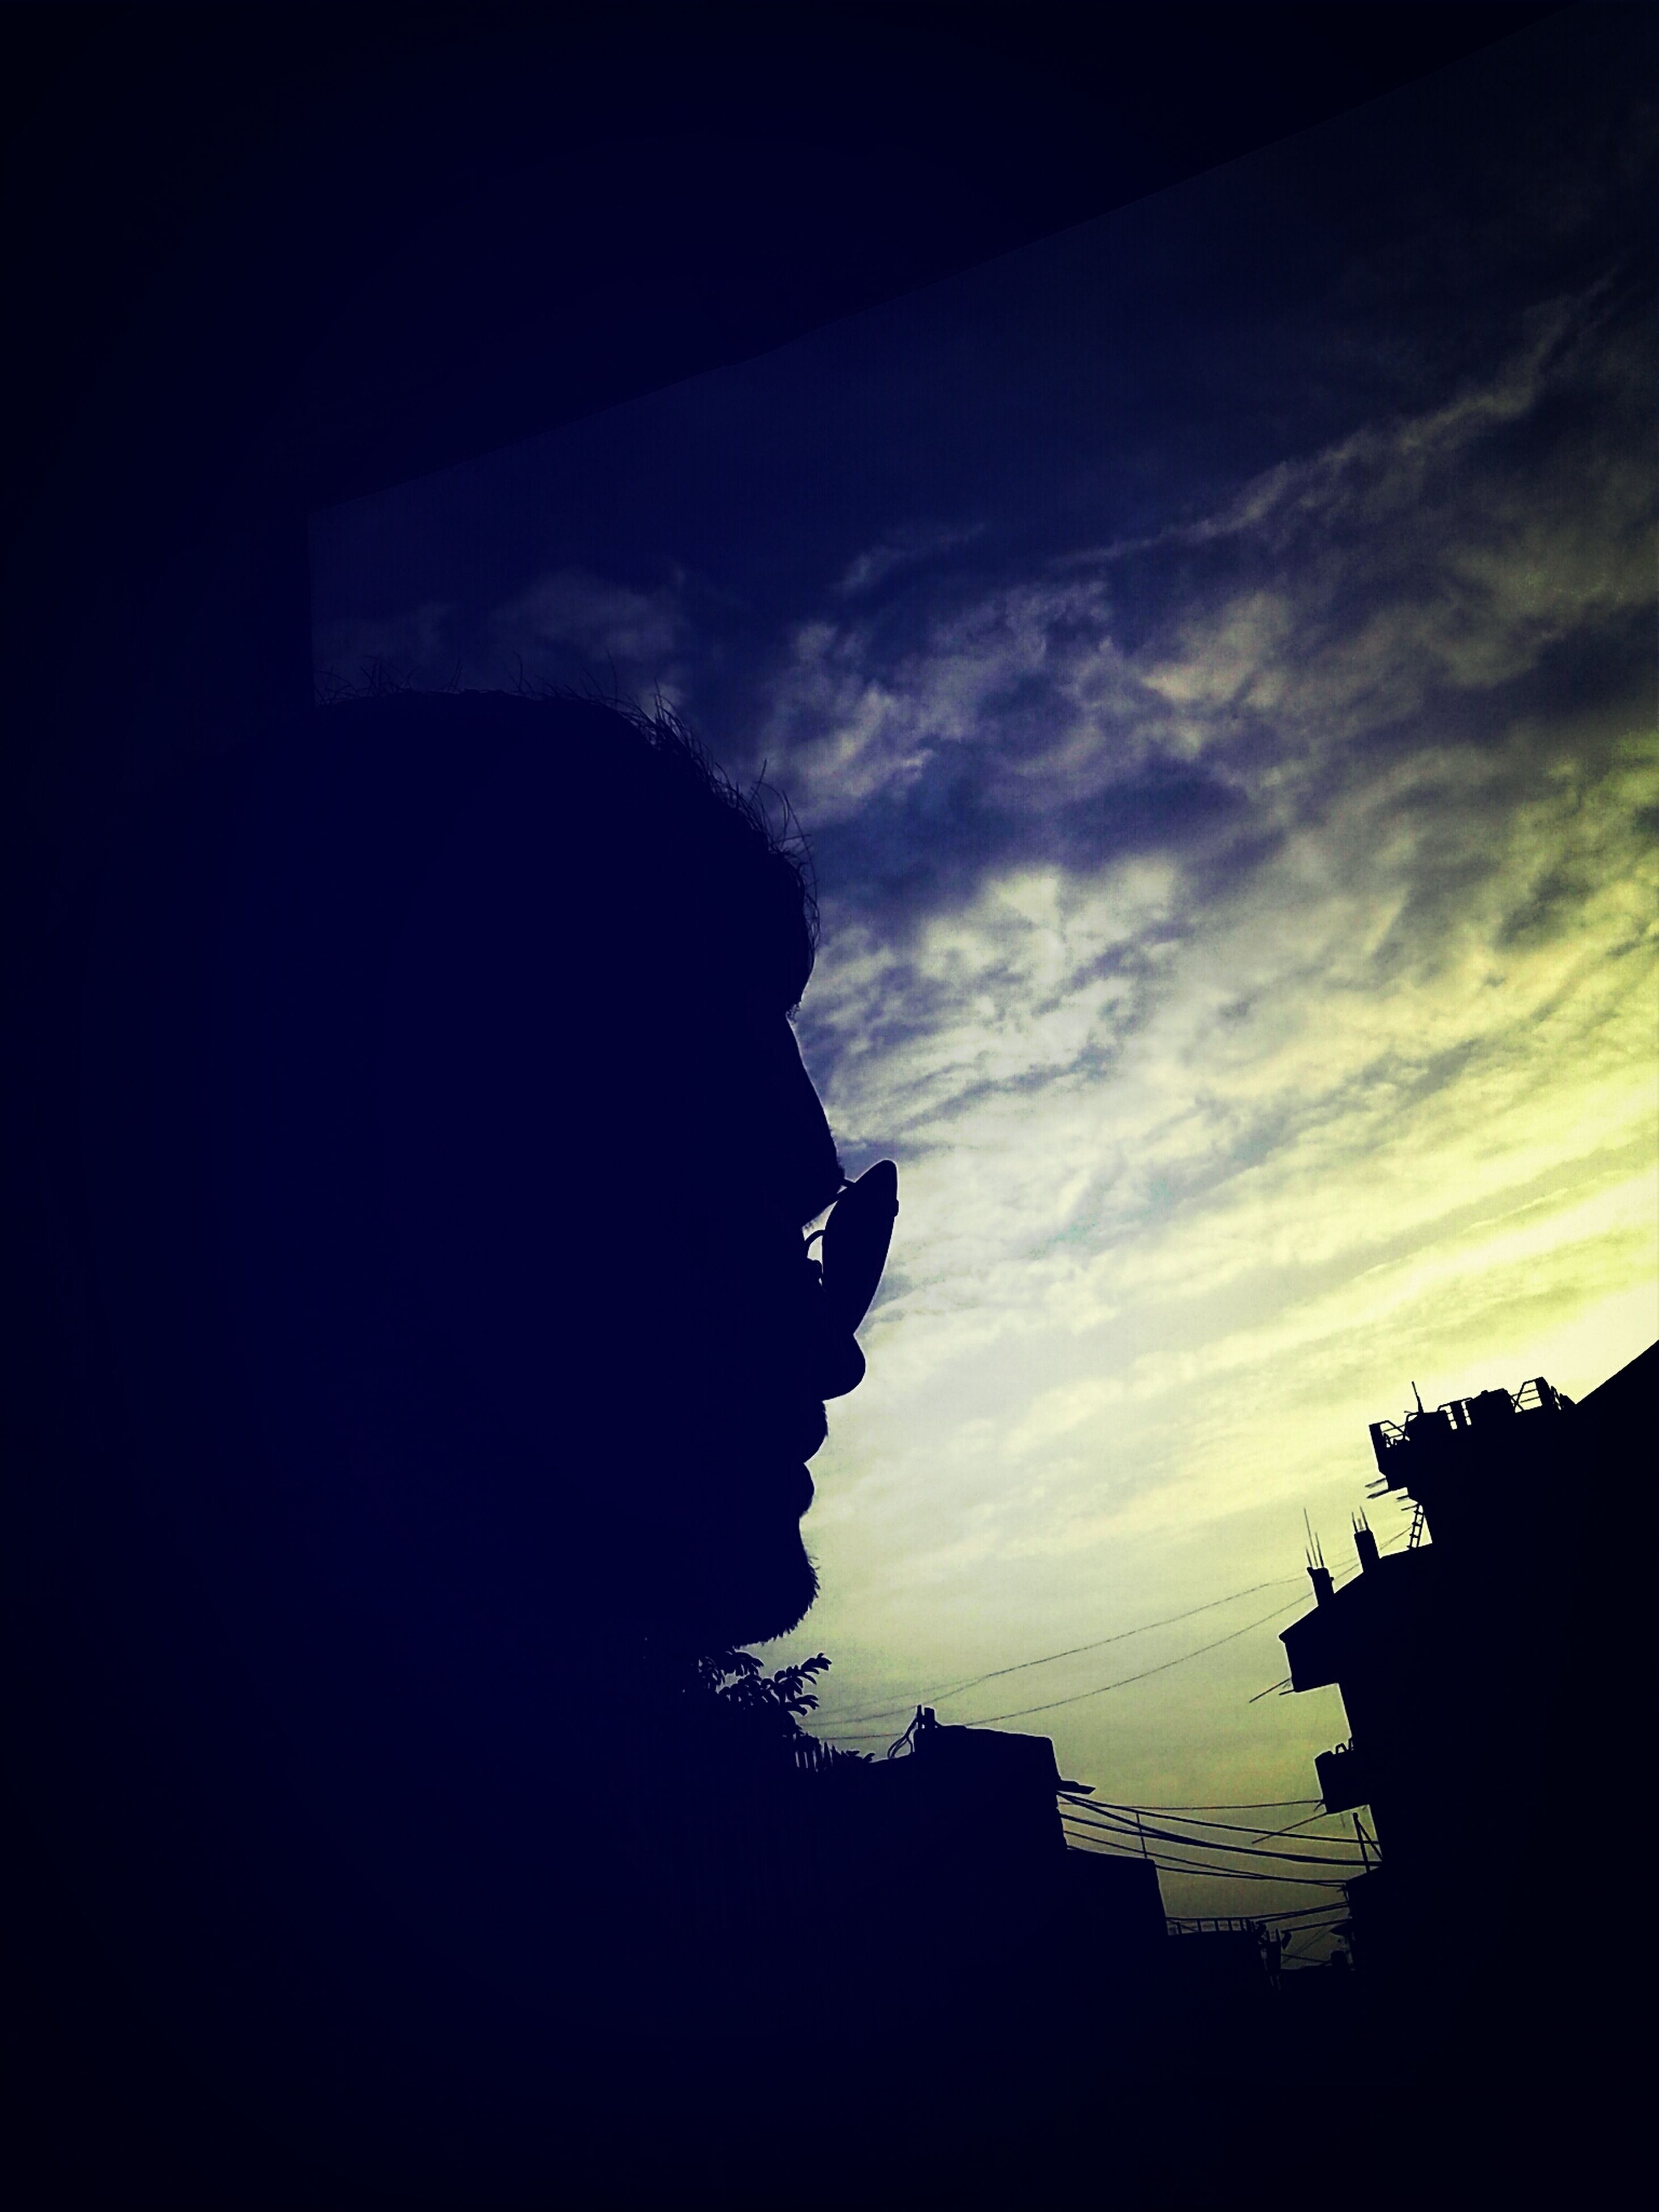 silhouette, sky, built structure, architecture, building exterior, low angle view, sunset, outline, cloud - sky, dark, dusk, cloud, cloudy, building, outdoors, copy space, nature, no people, city, weather